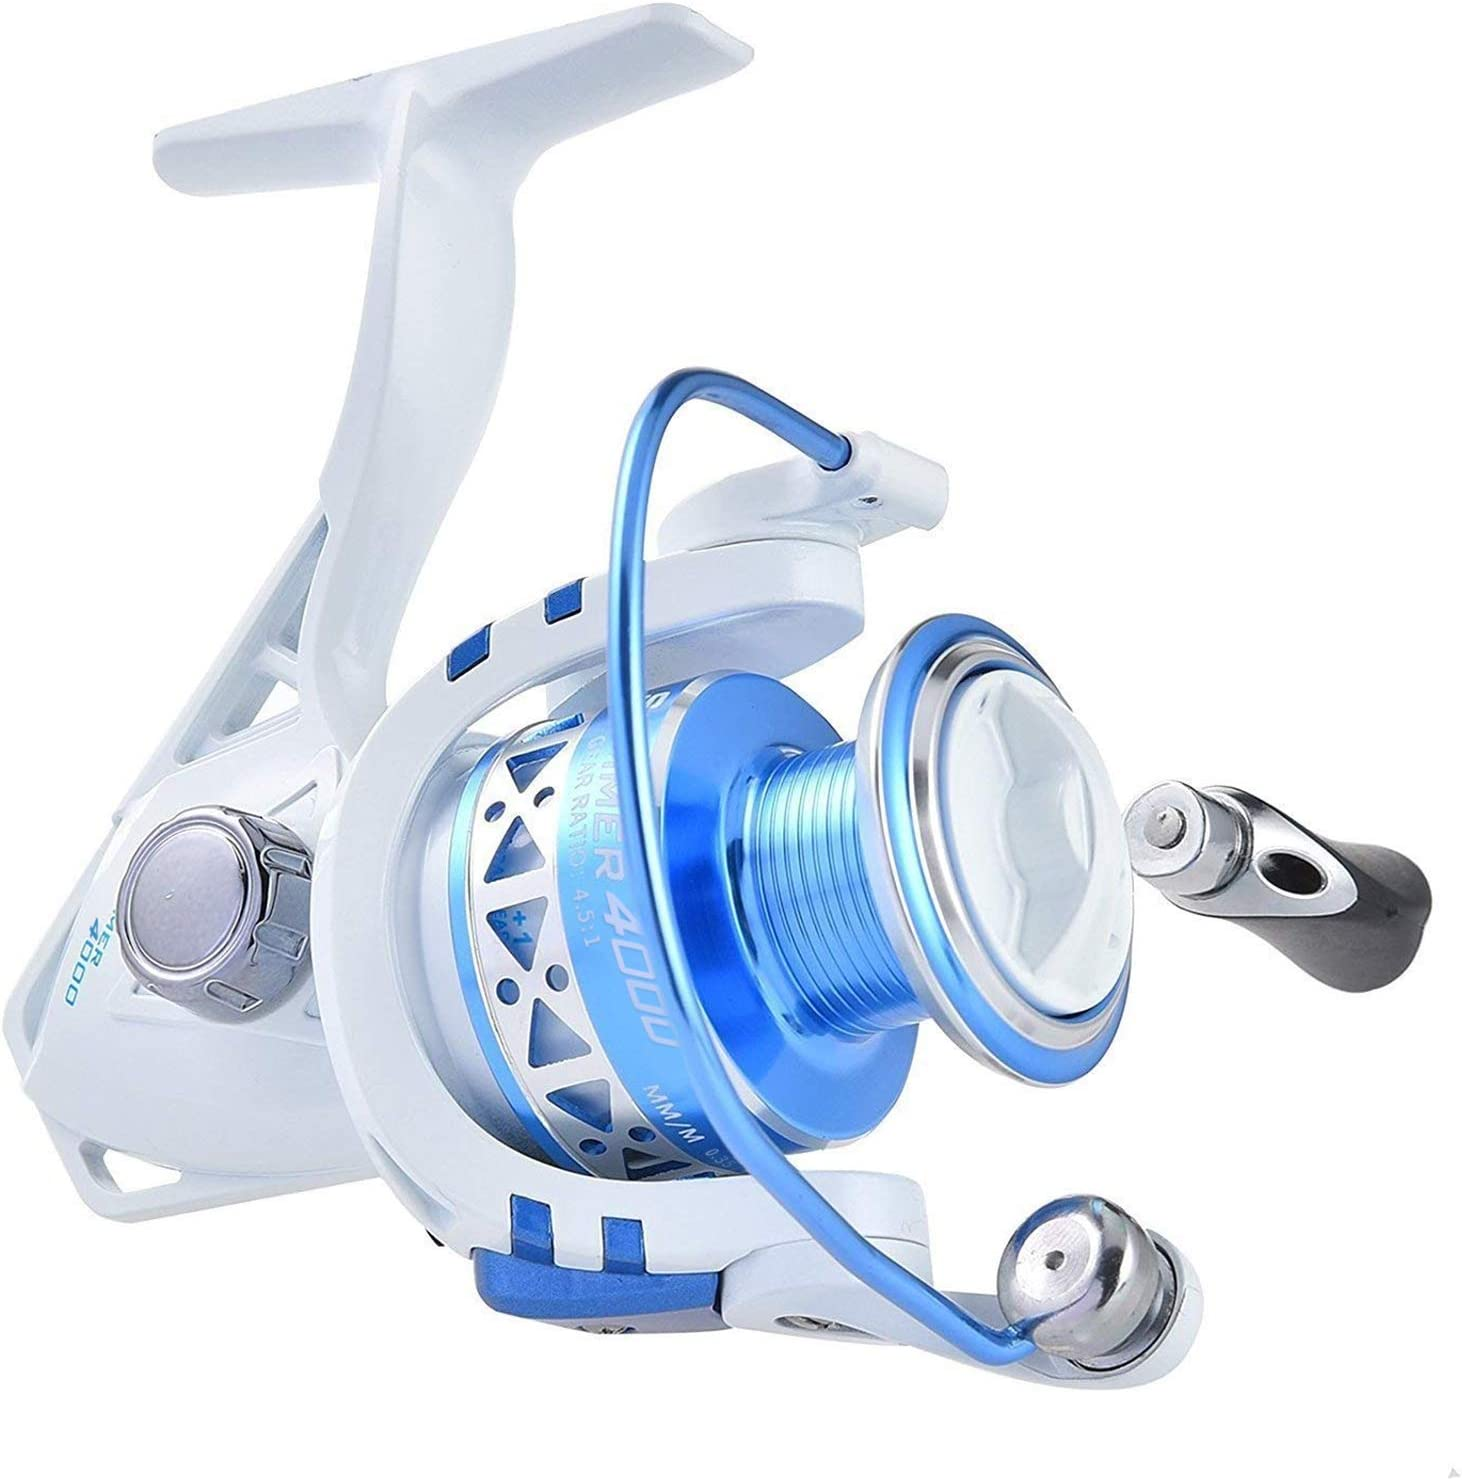 KastKing Summer and Centron Max 67% OFF Spinning Industry No. 1 Reels BB Weight 9 Light +1